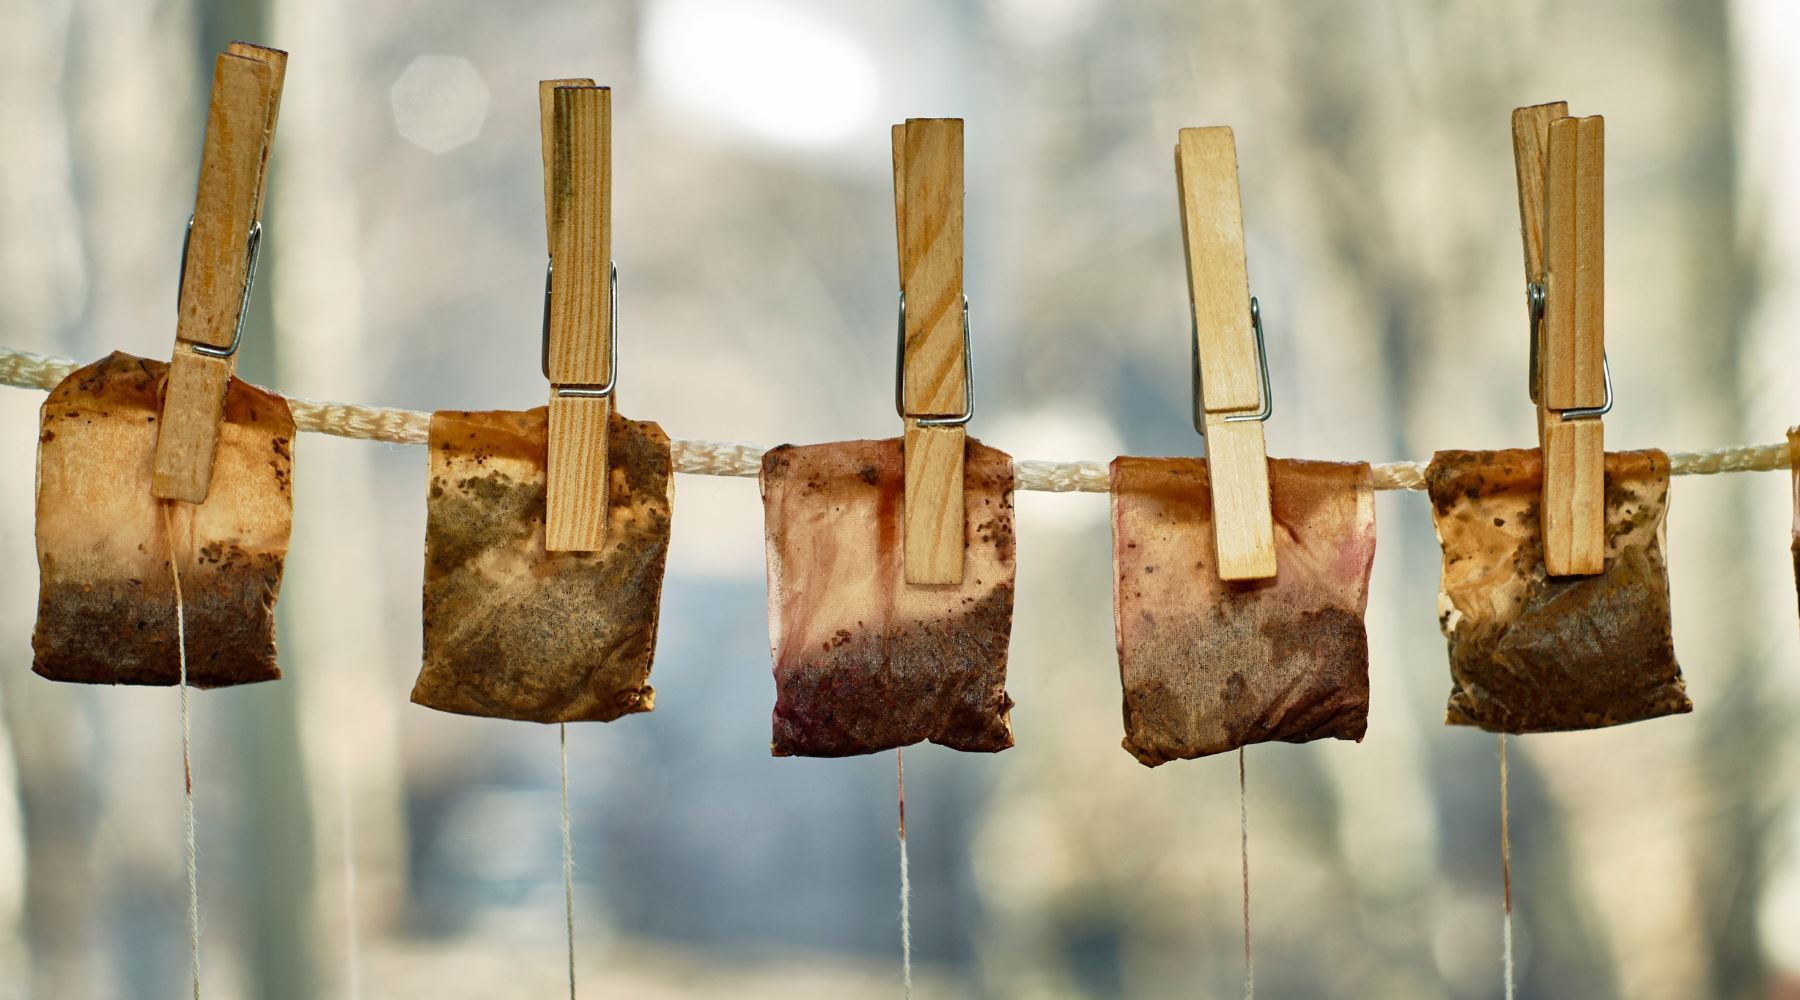 20 Ingenious Ways to Use Old Tea Bags